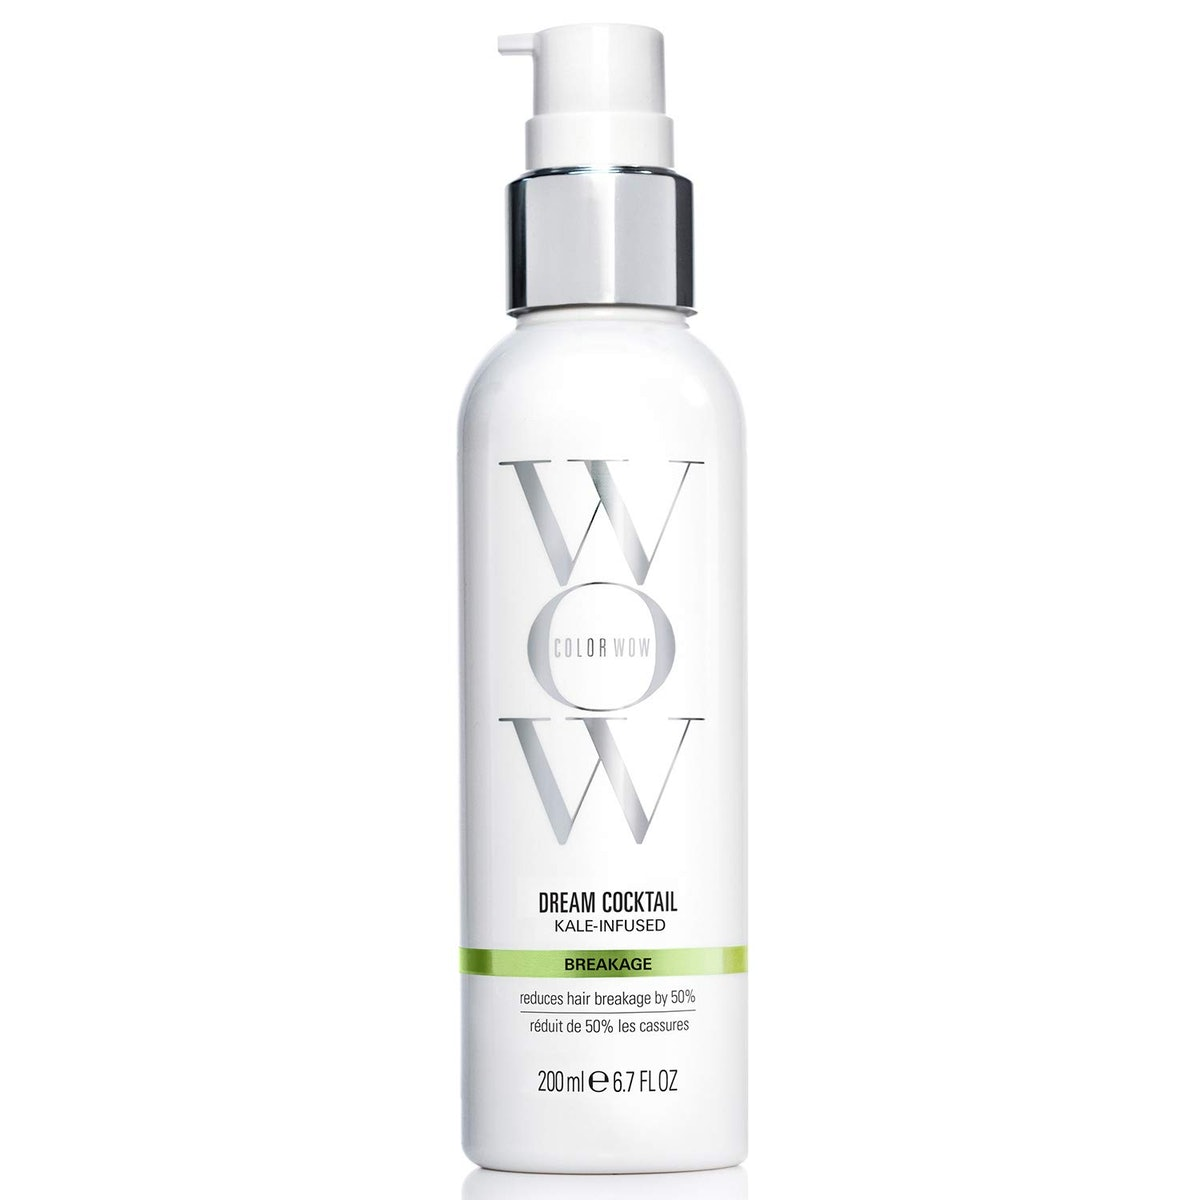 COLOR WOW Dream Cocktail Leave-In Treatment